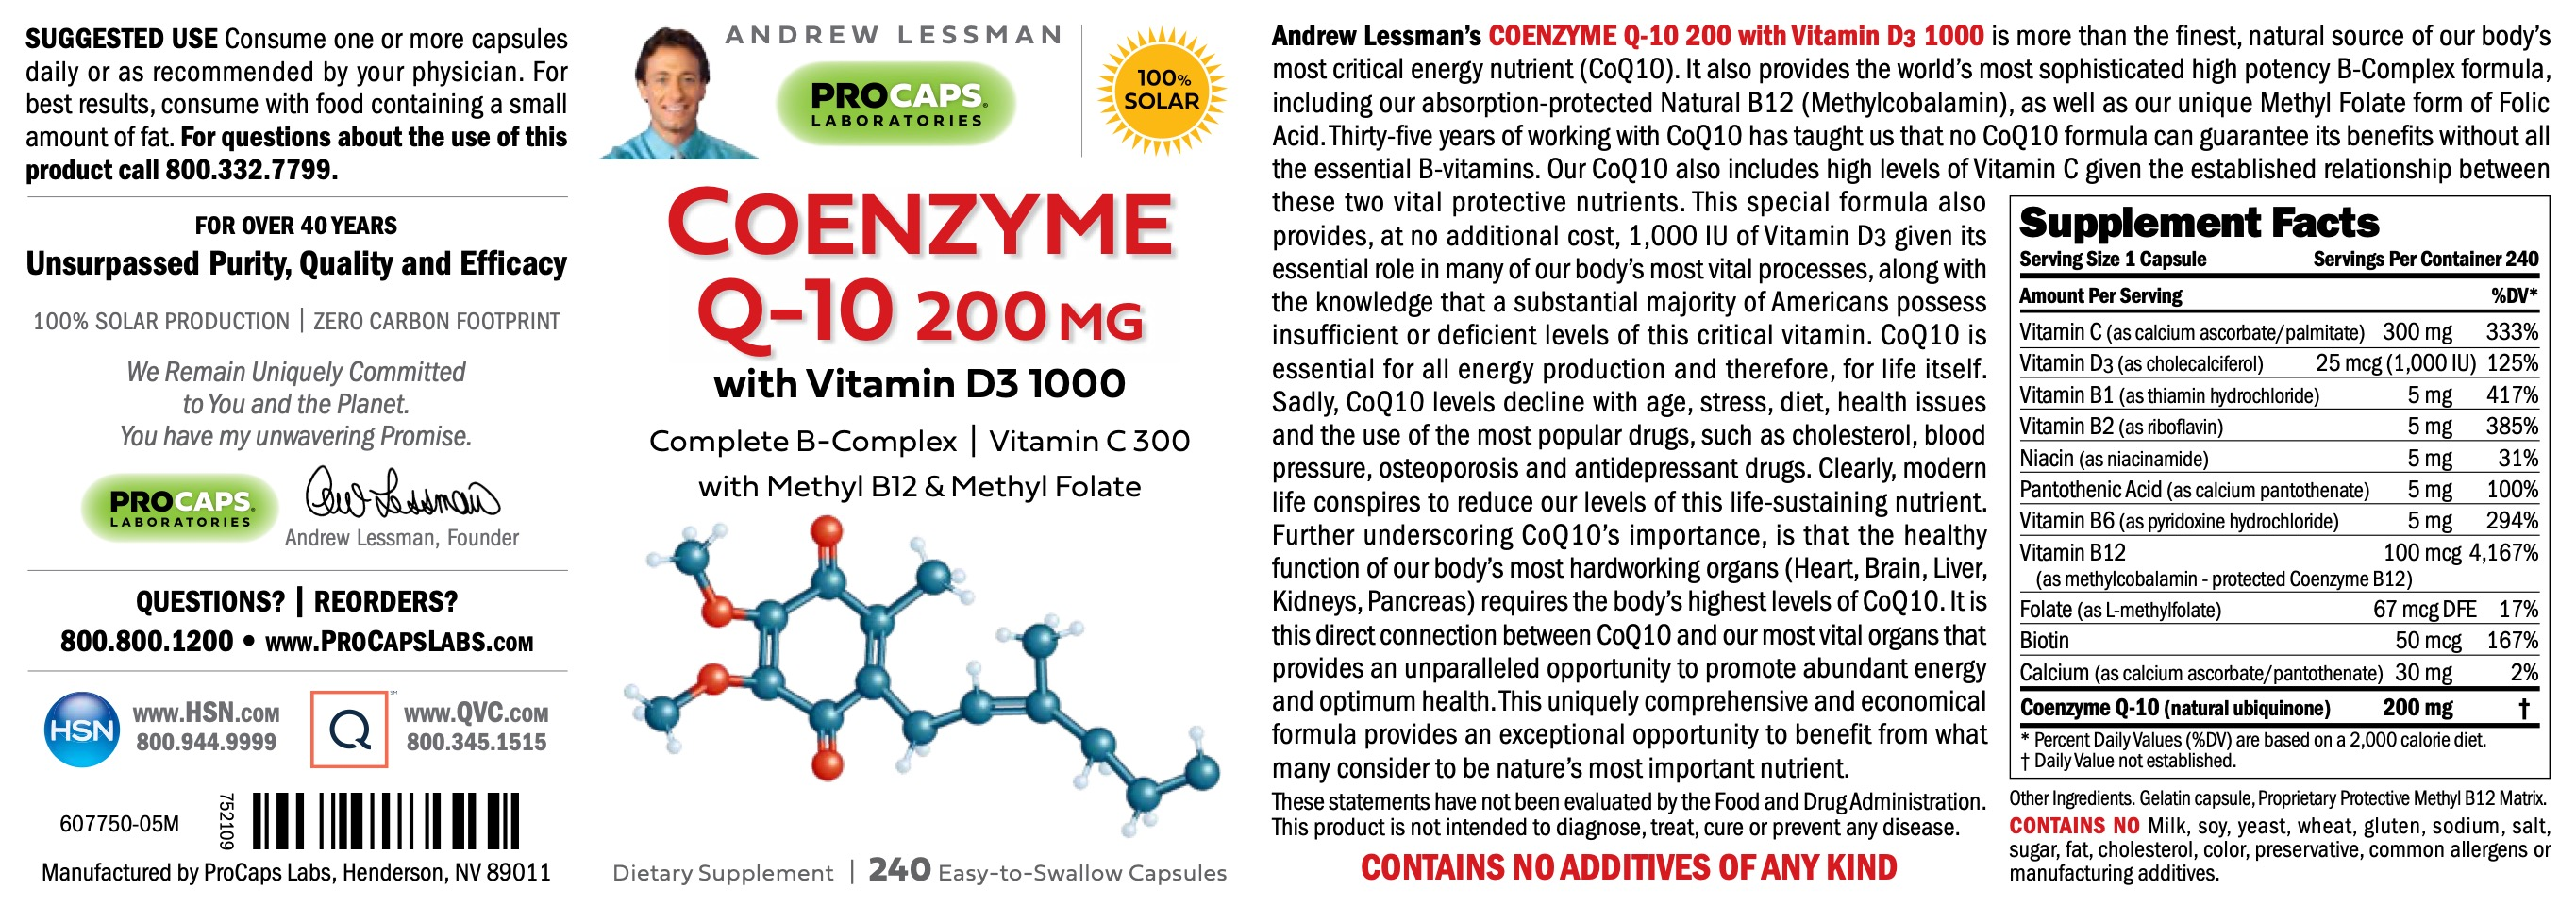 CoEnzyme-Q-10-200-mg-with-Vitamin-D3-1000-Capsules-Anti-oxidants